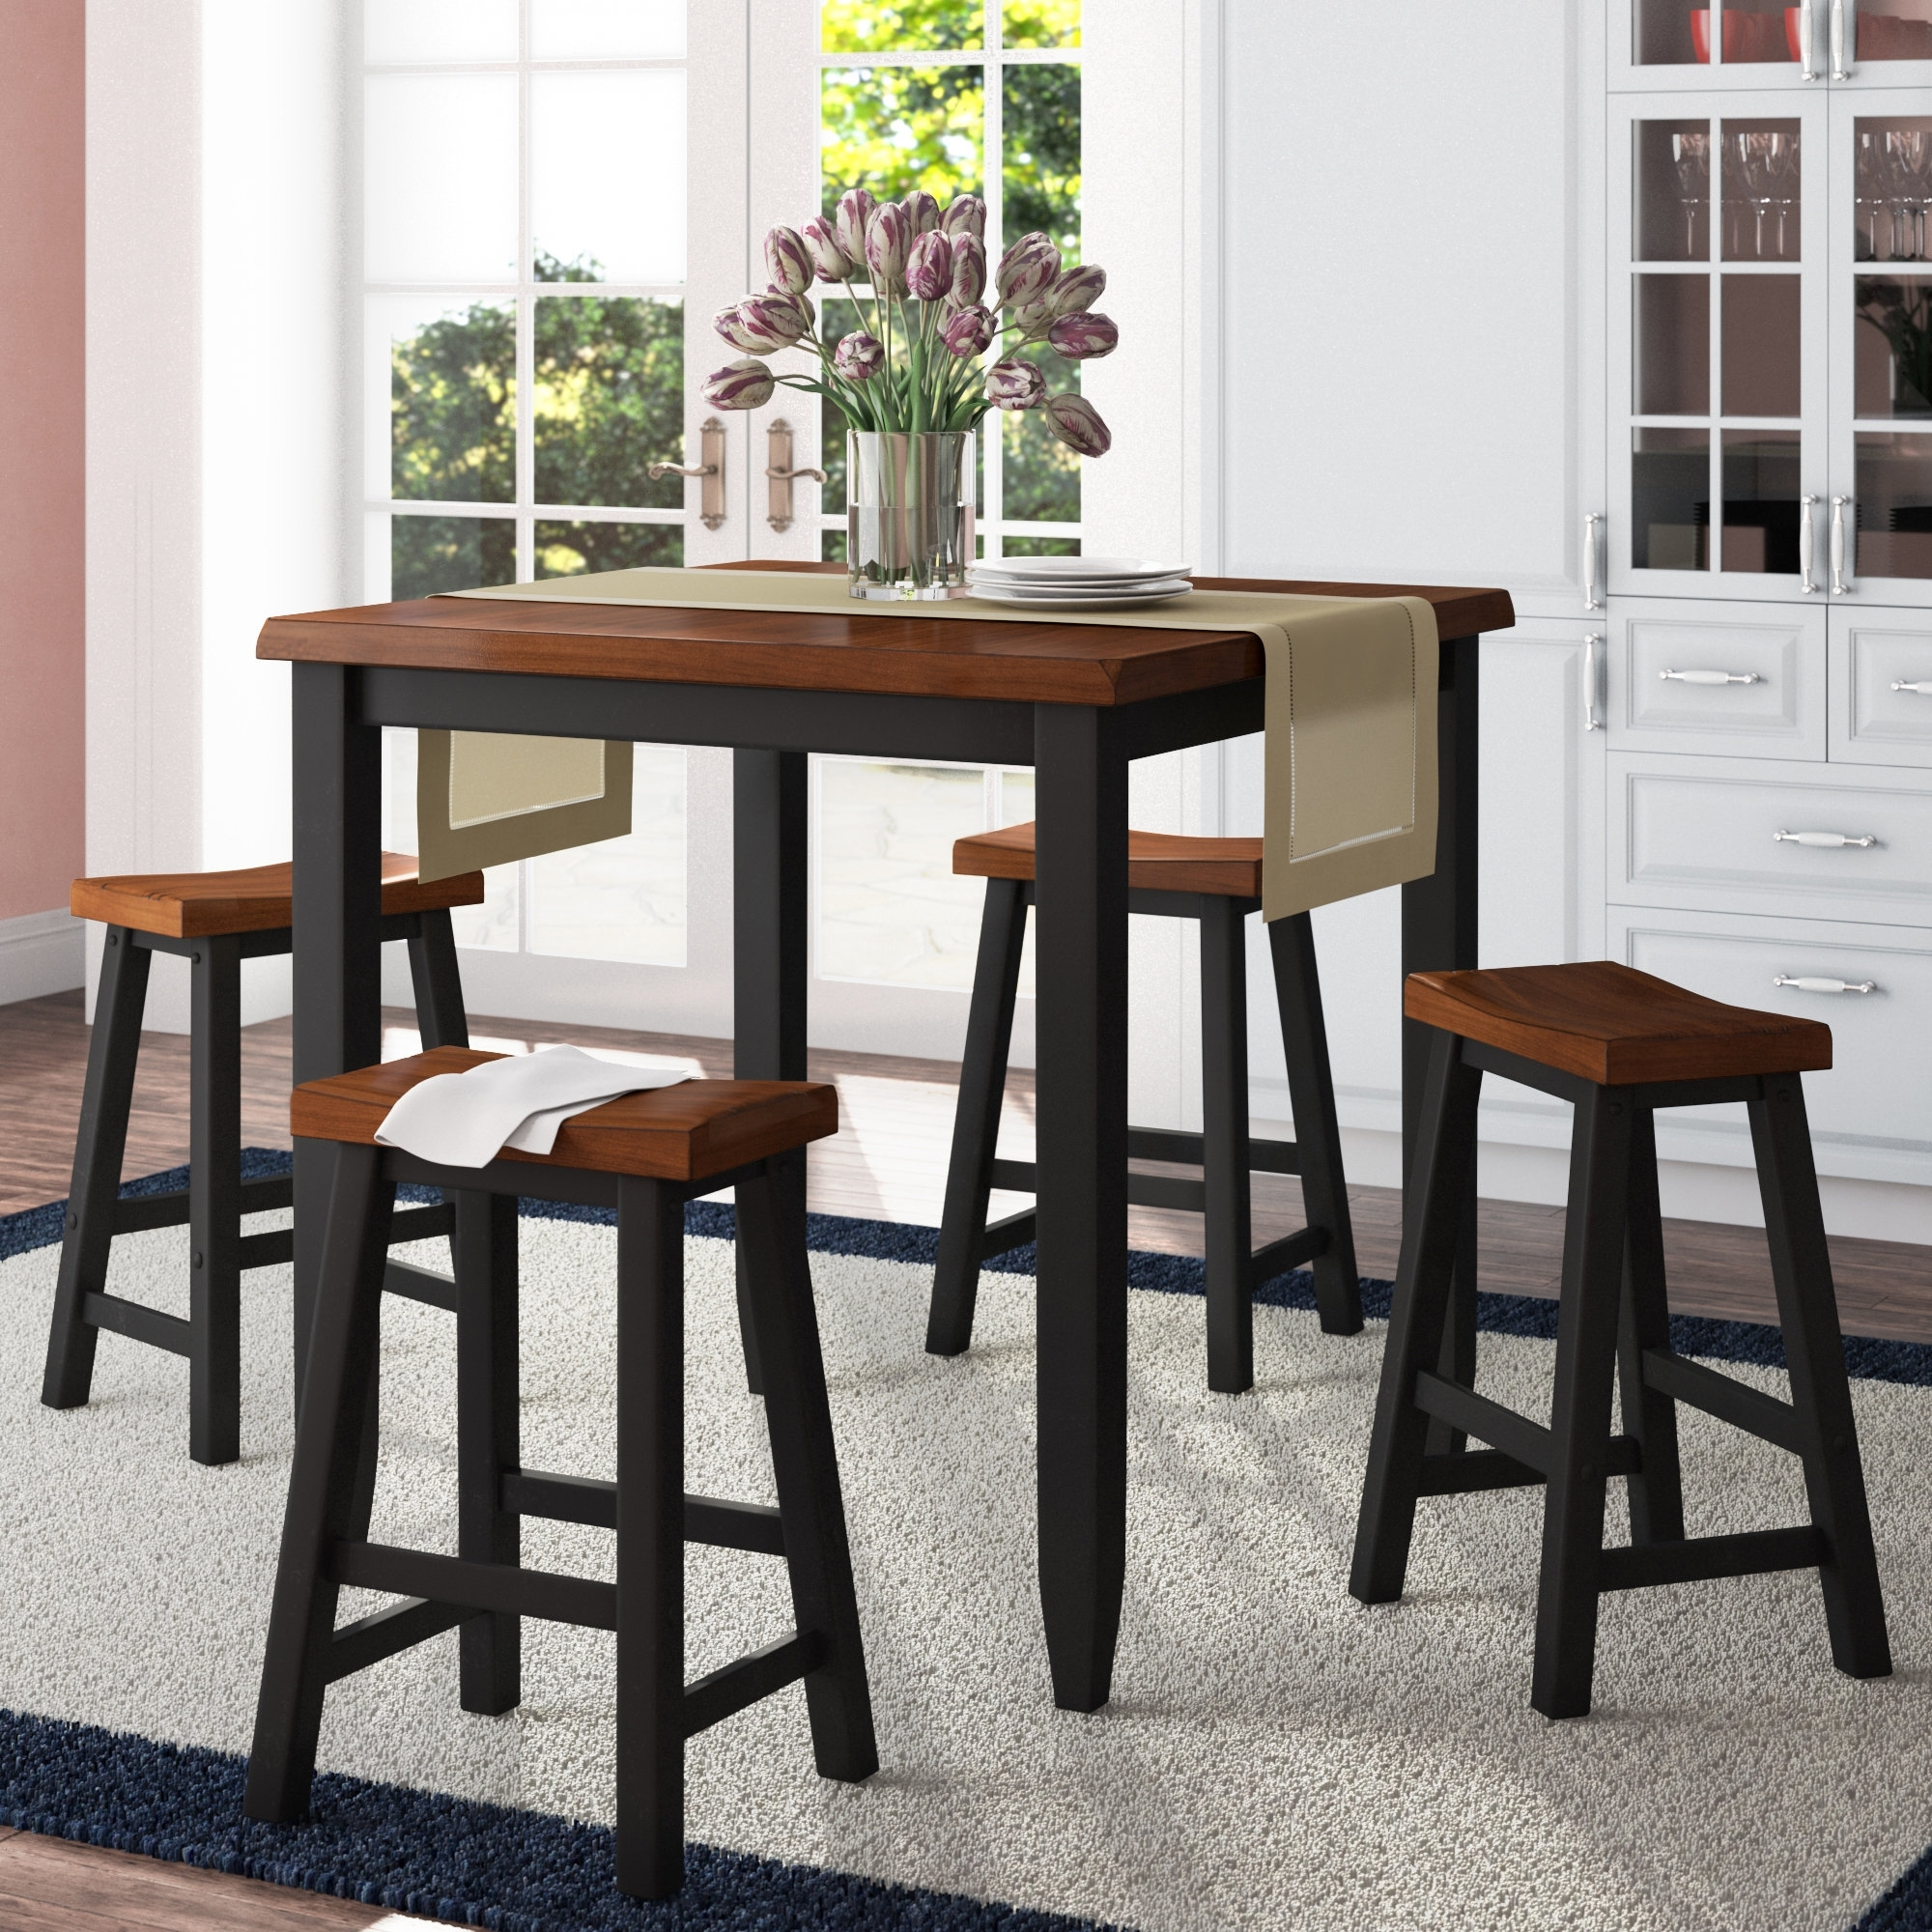 Most Popular Darby Home Co Simmons Casegoods Ruggerio 5 Piece Counter Height Pub Pertaining To Jaxon 5 Piece Round Dining Sets With Upholstered Chairs (Gallery 10 of 25)